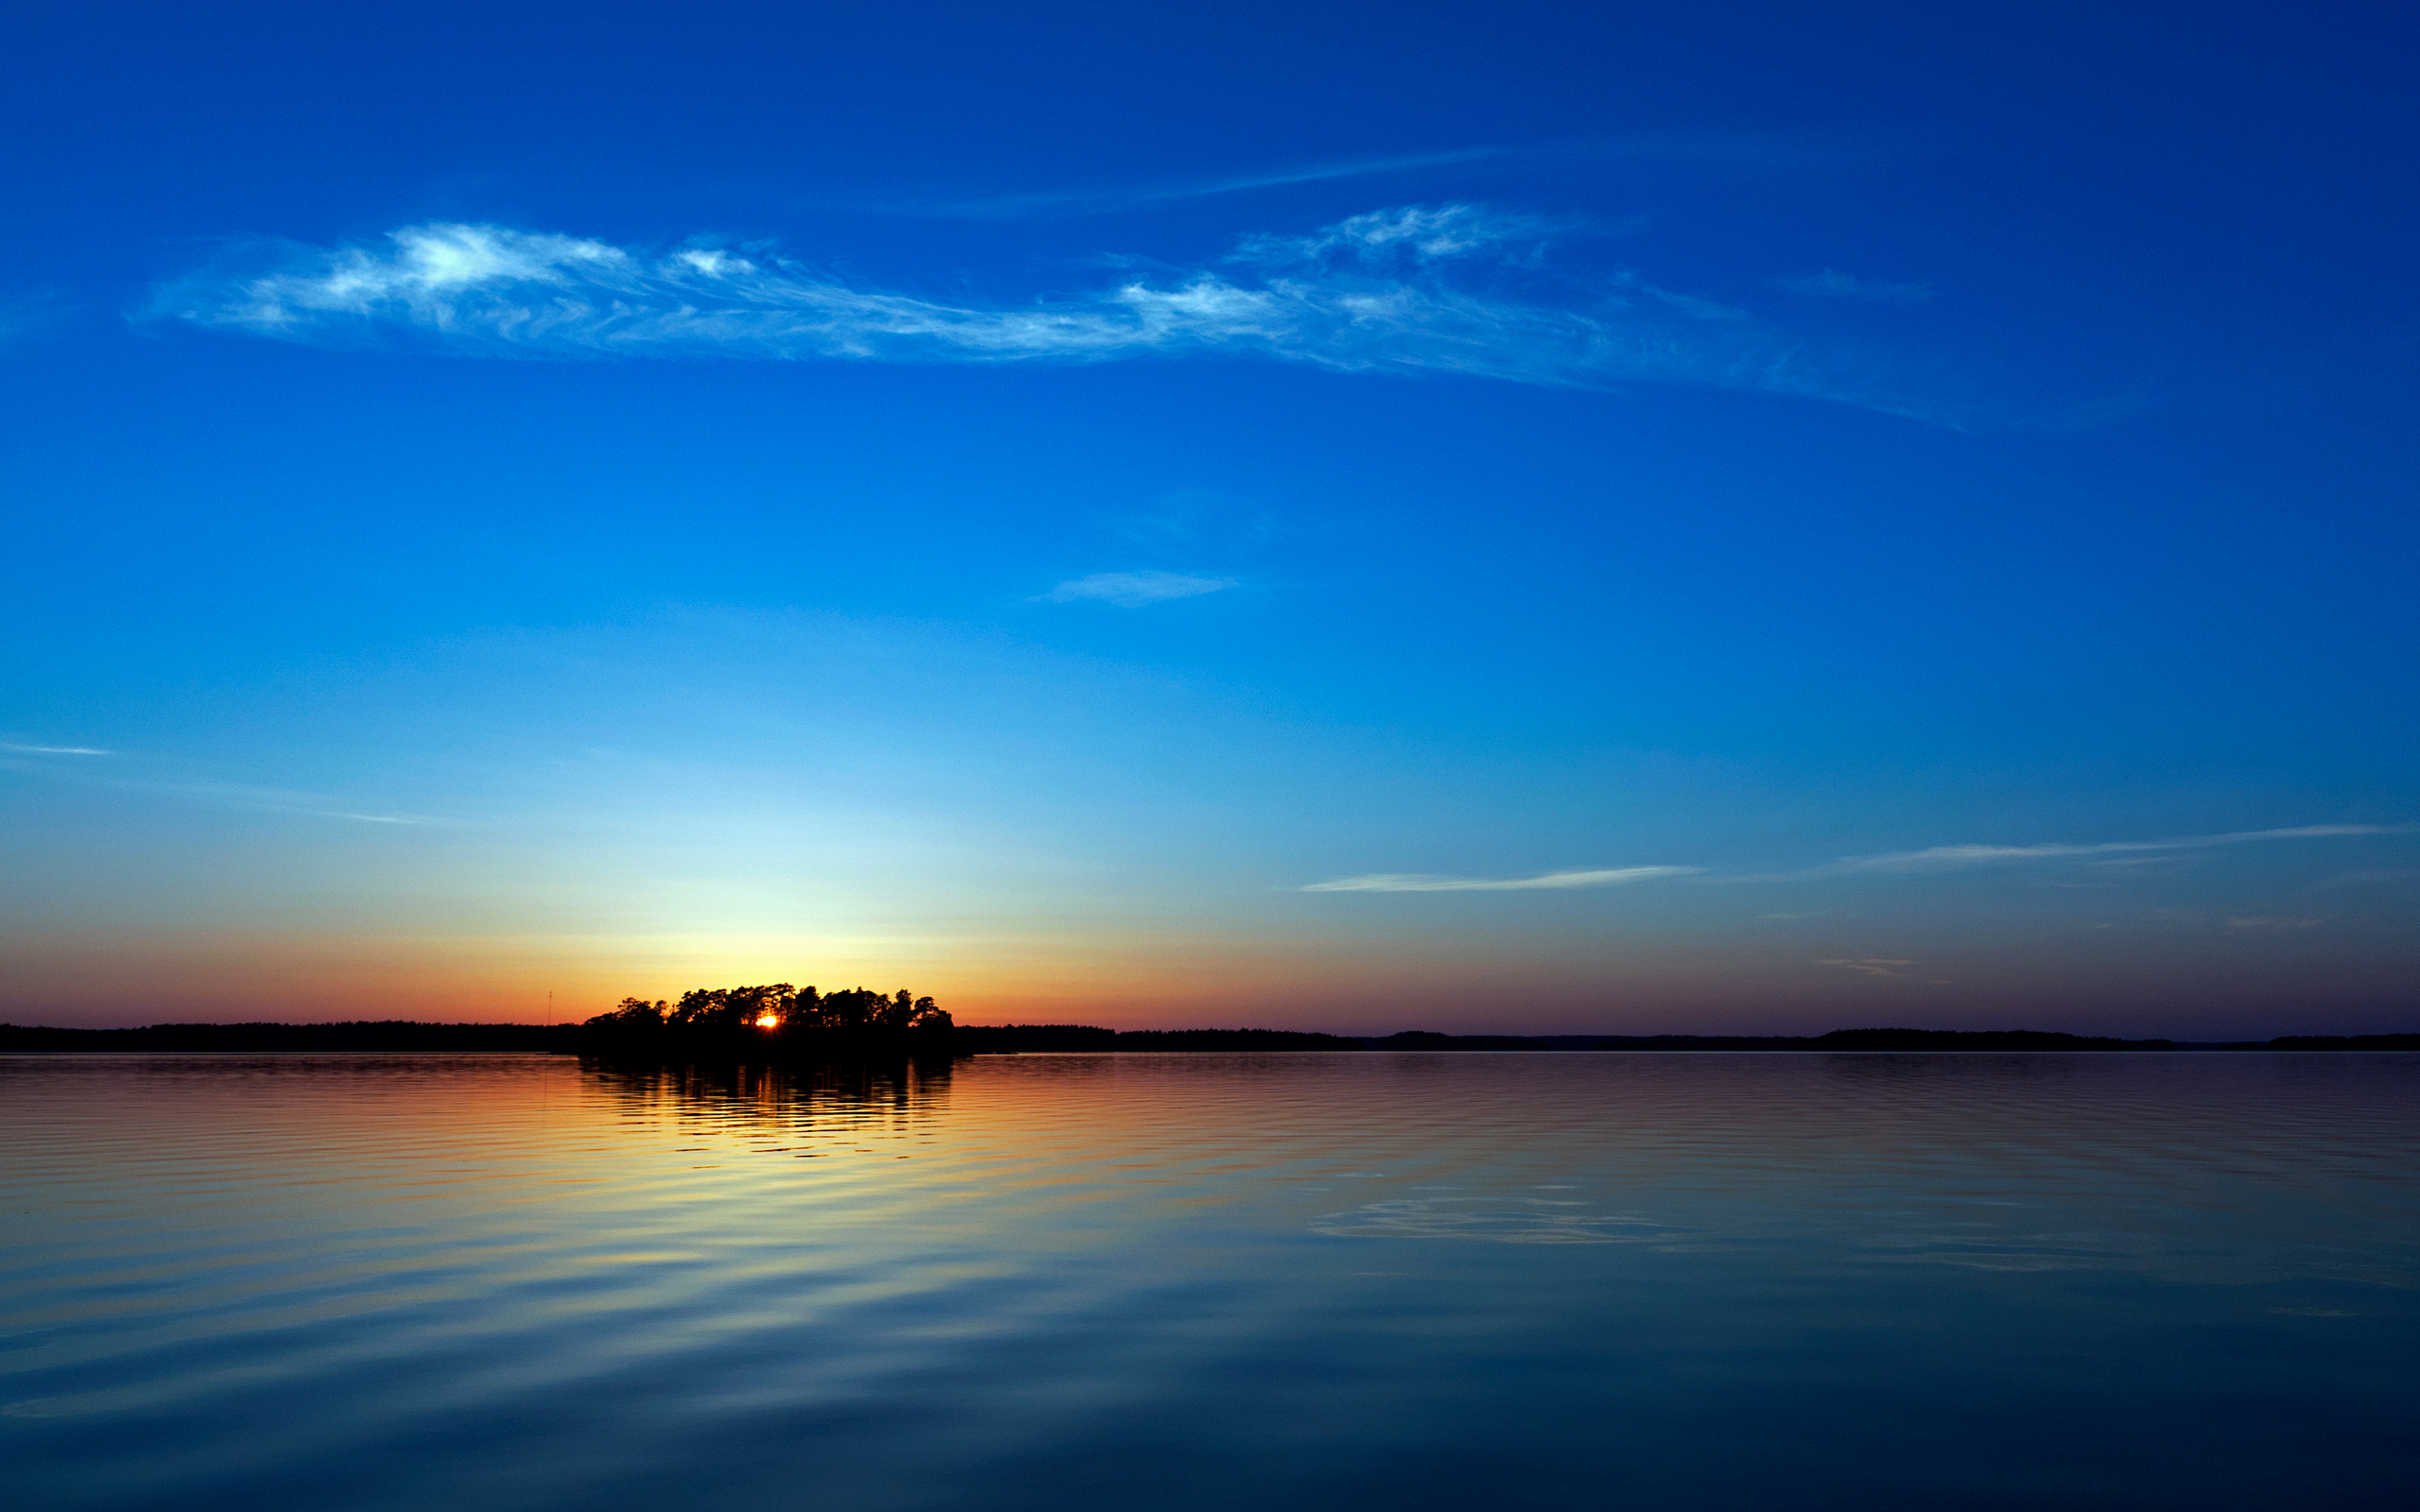 Blue Sunset Wallpaper Widescreen